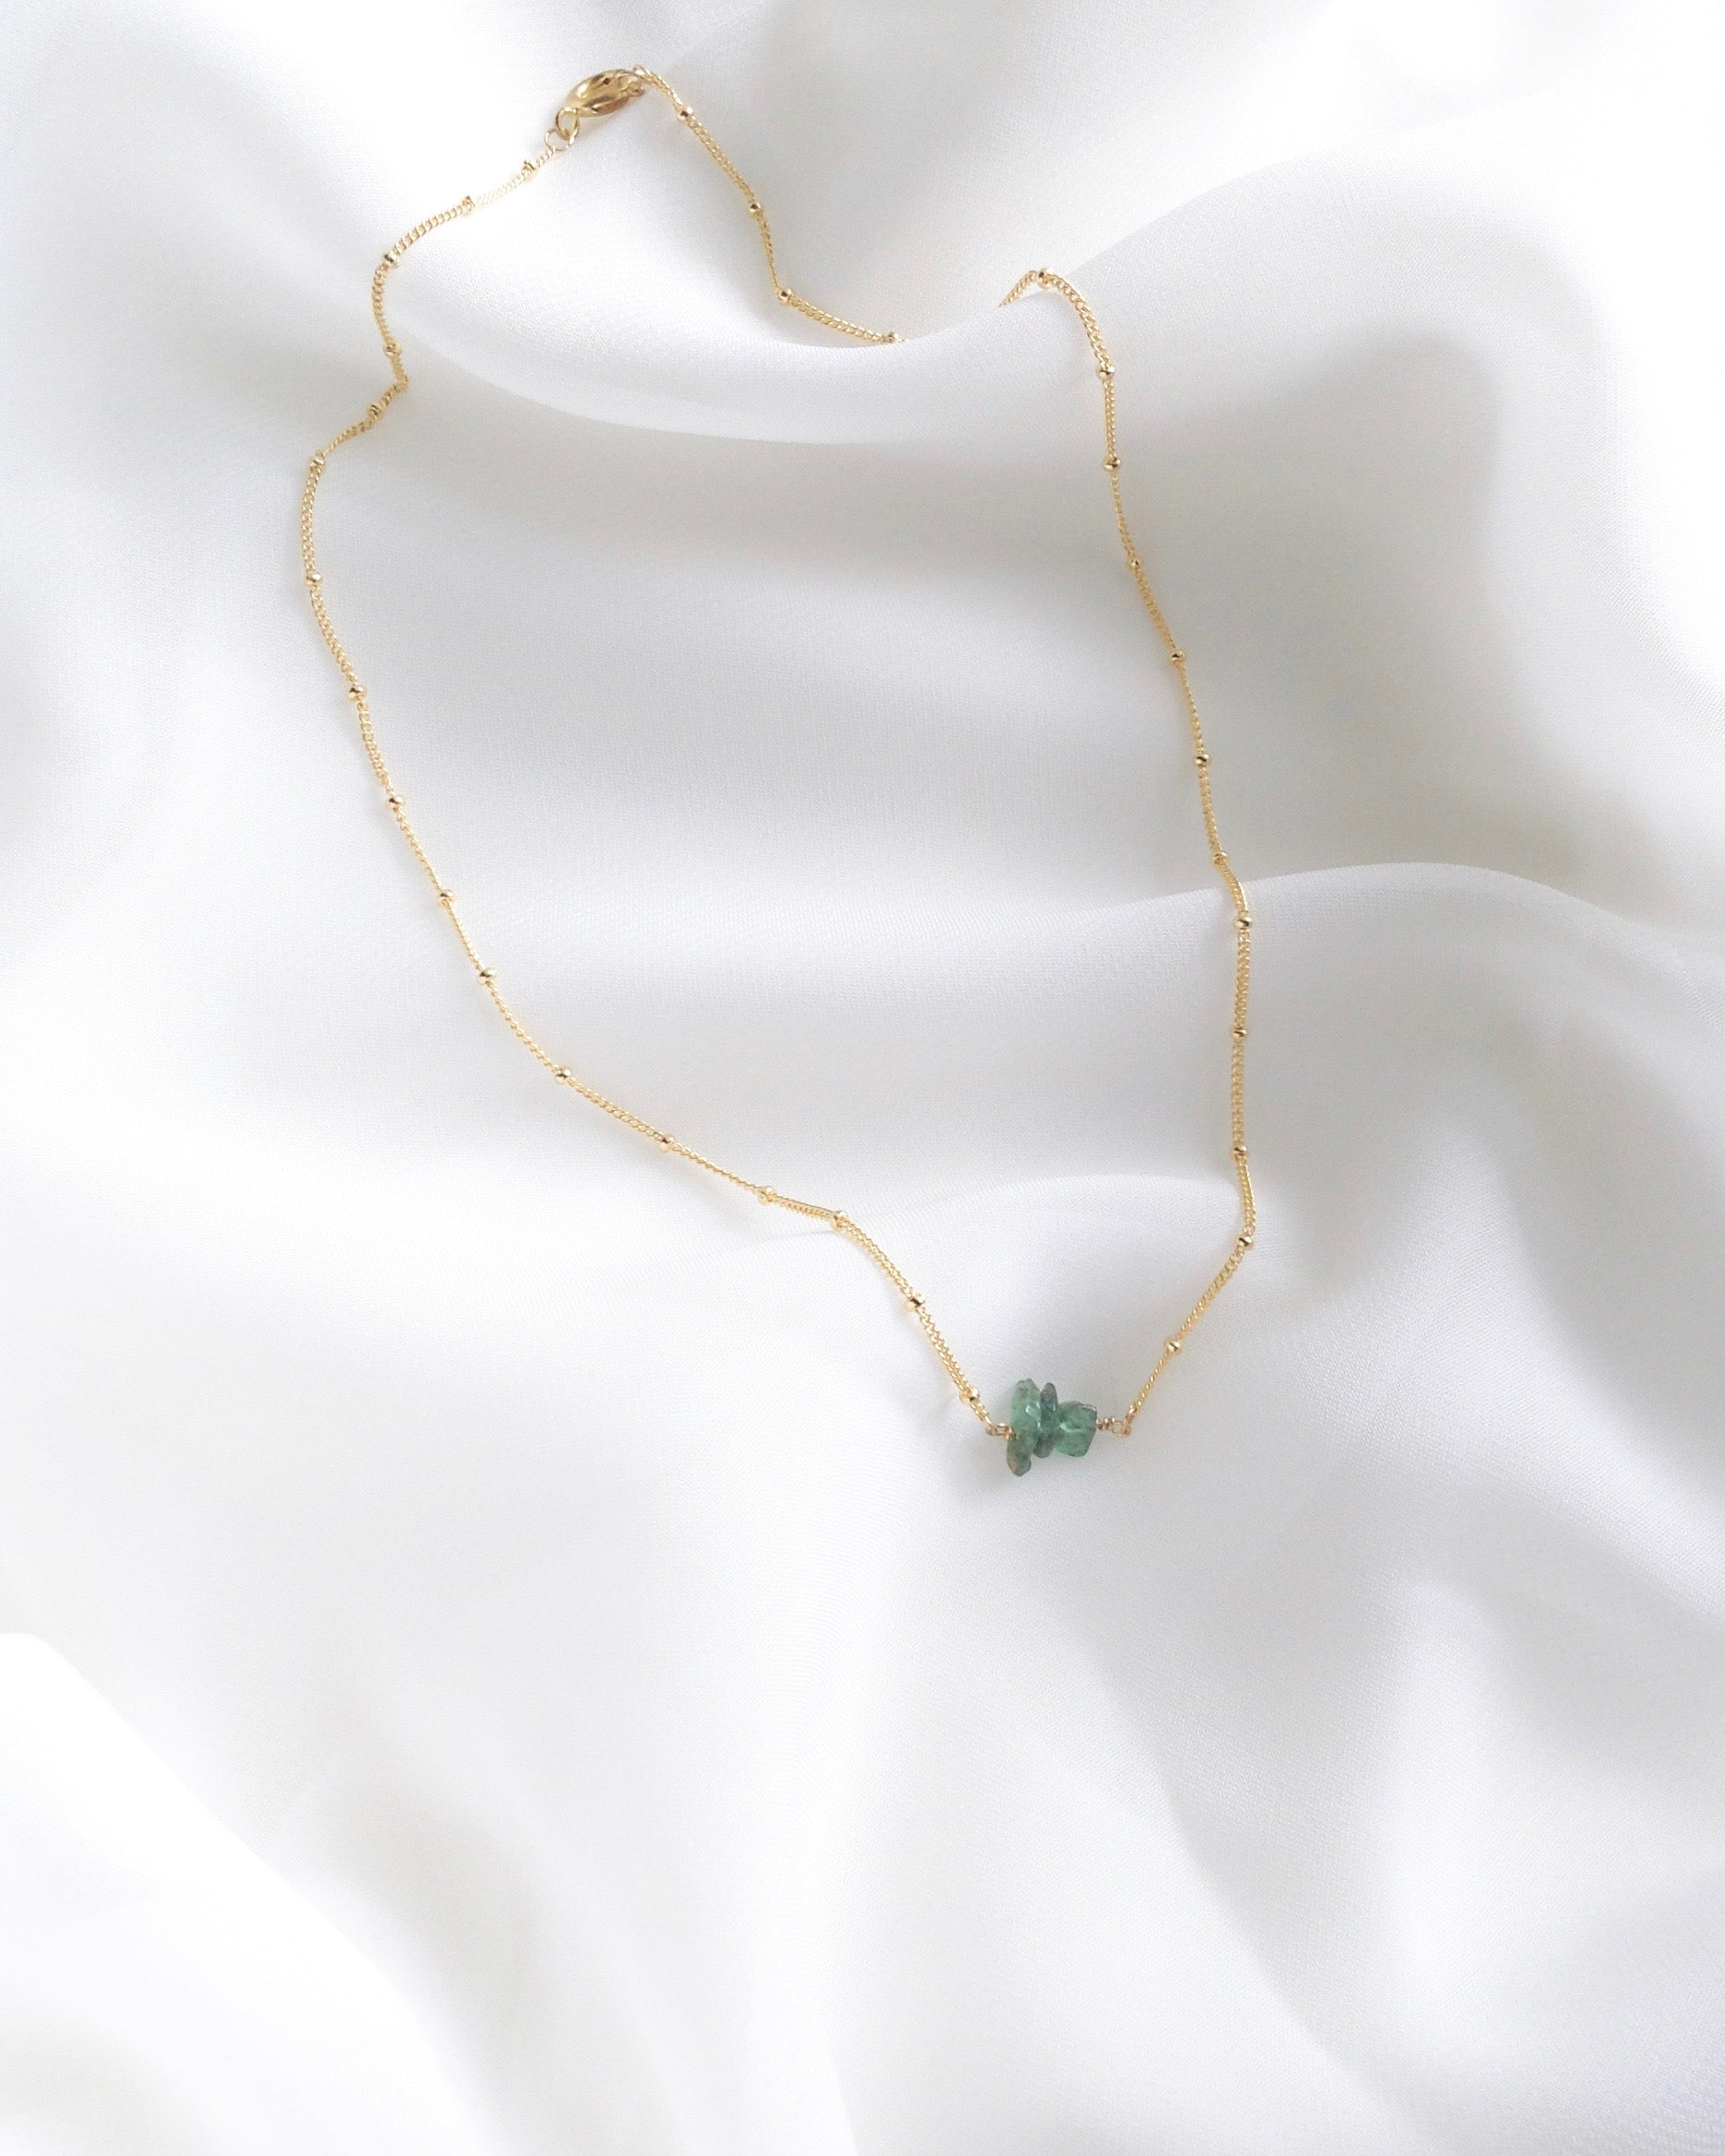 Genuine Emerald Raw Gemstone Necklace in Gold Filled or Sterling Silver | IB Jewelry